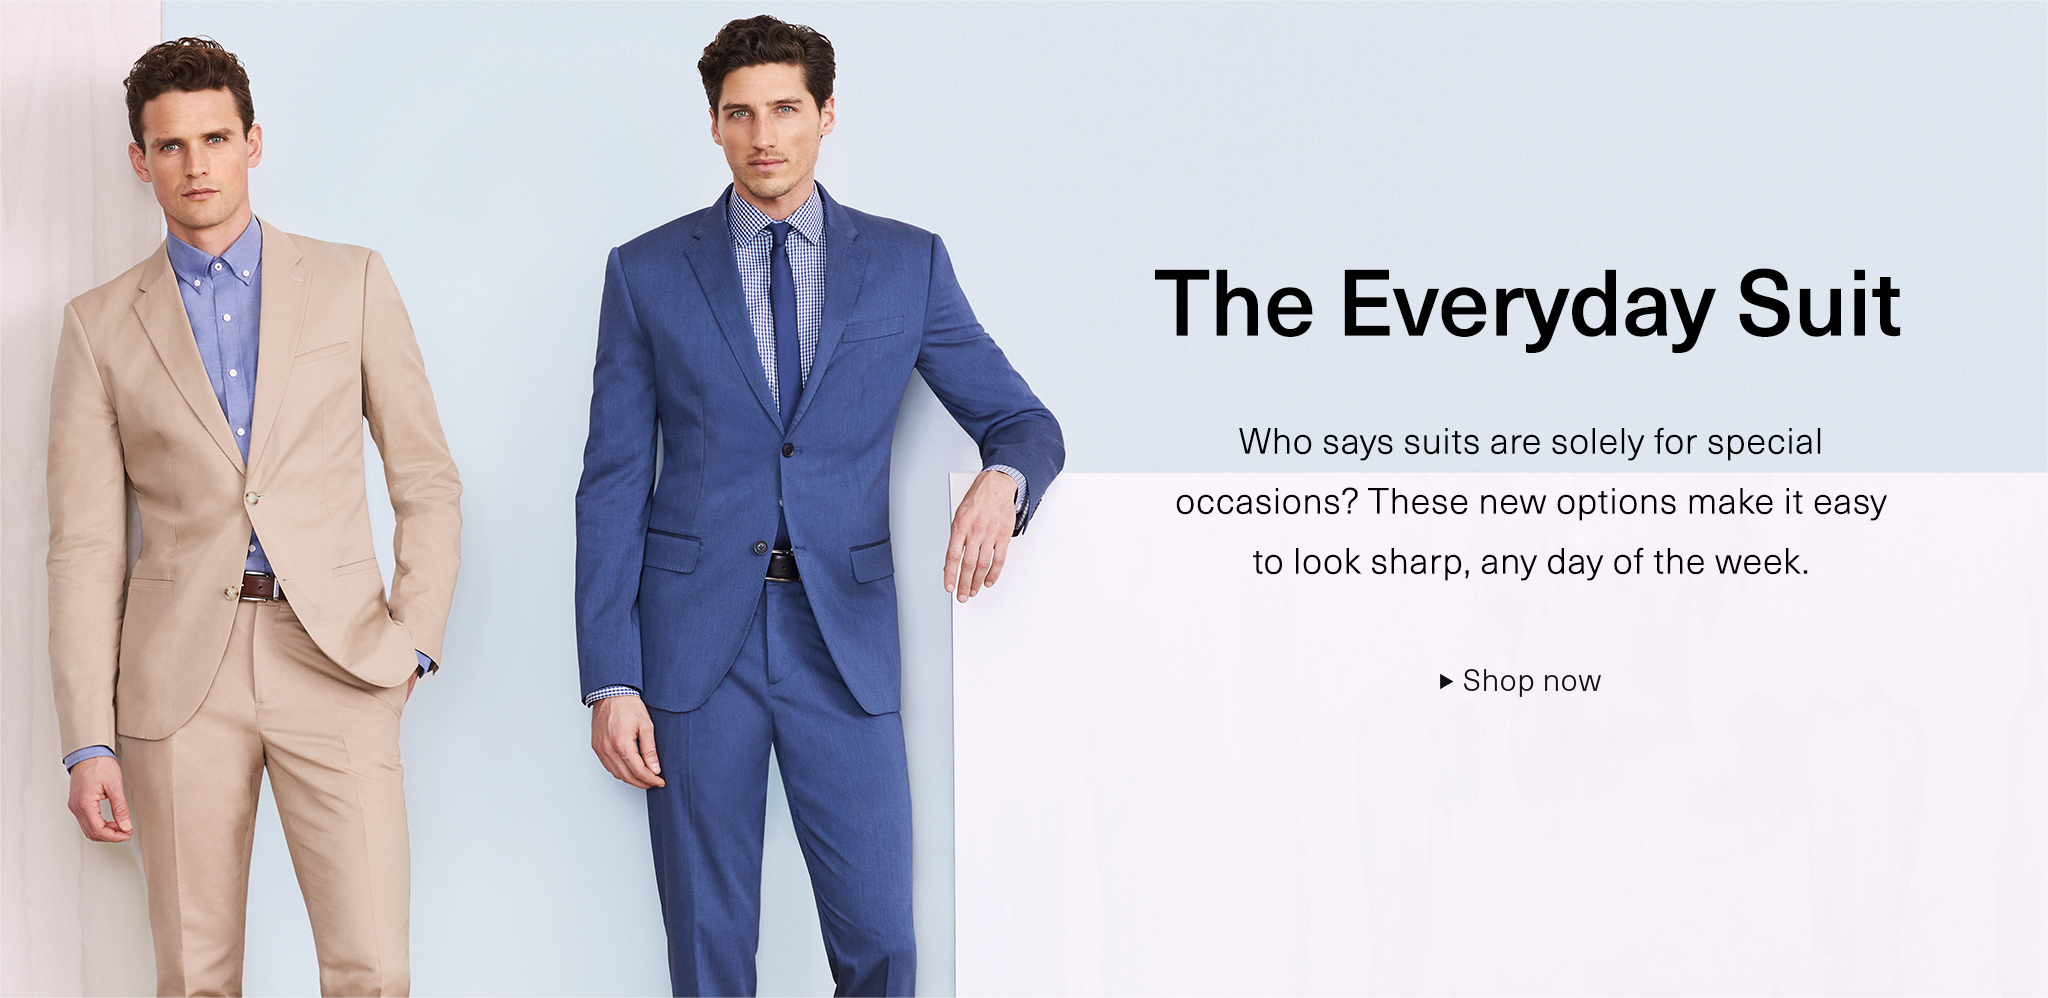 The Everyday Suit